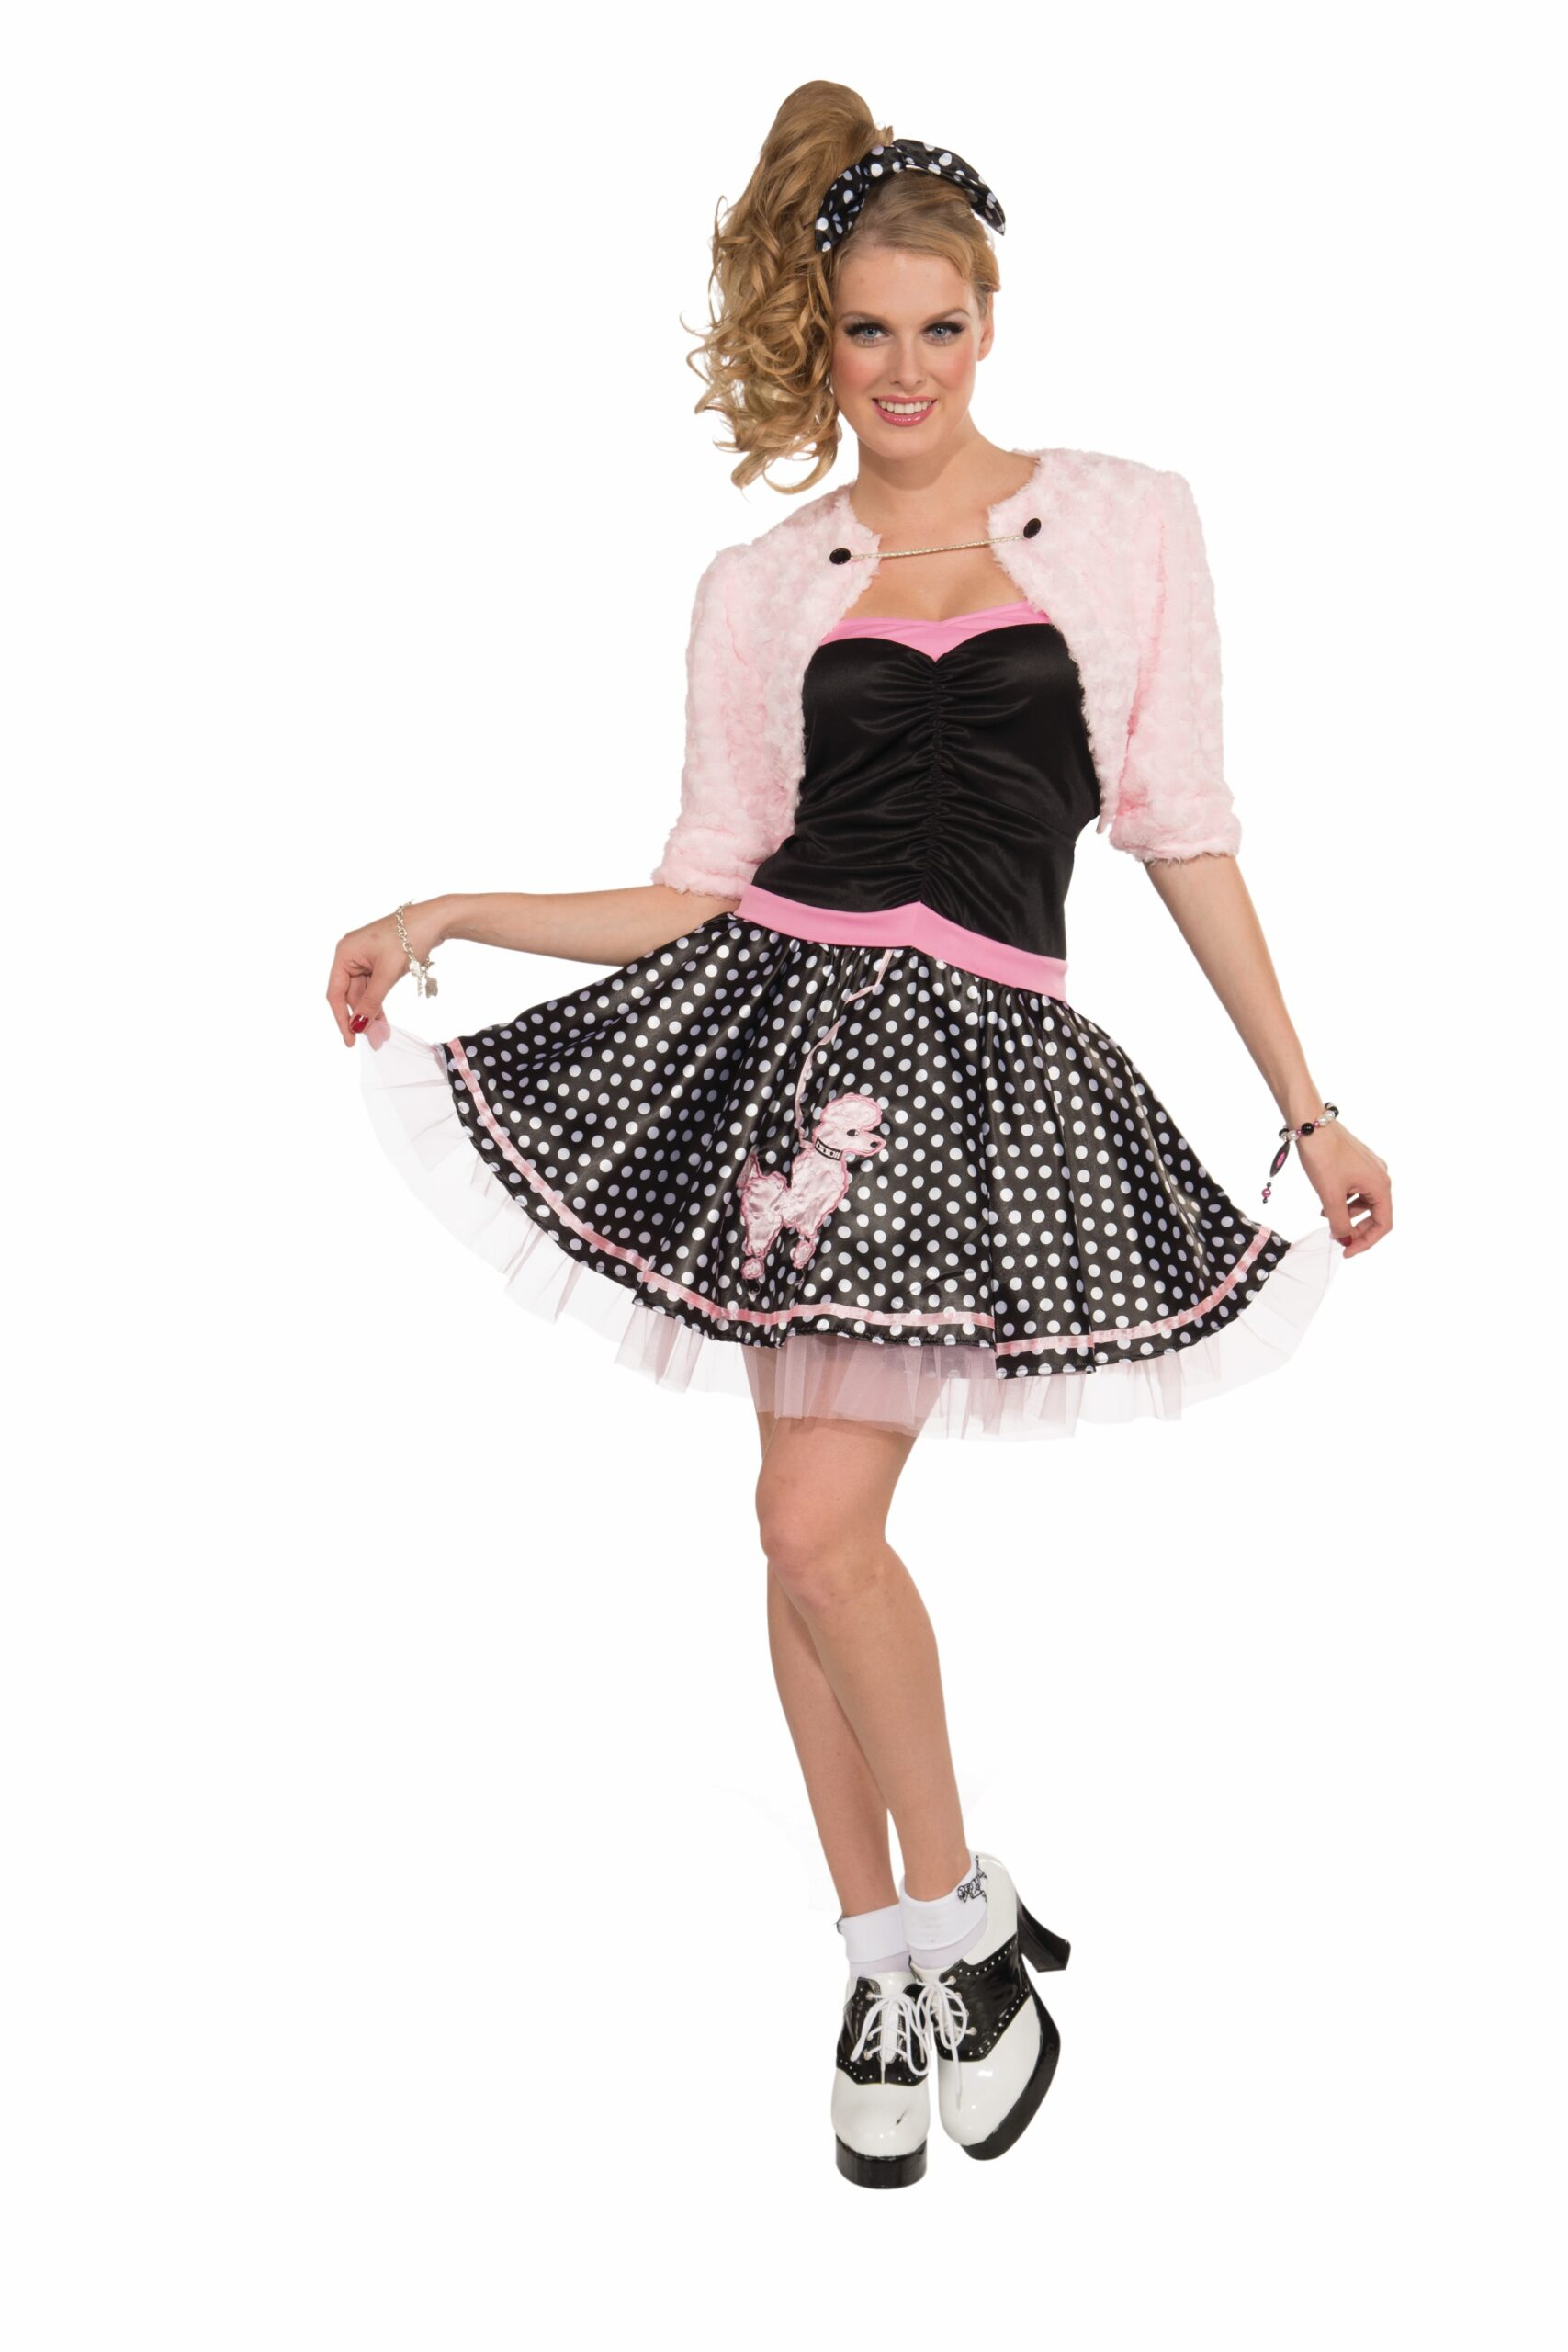 adult female in 60s style sock hop poodle skirt and saddle shoes